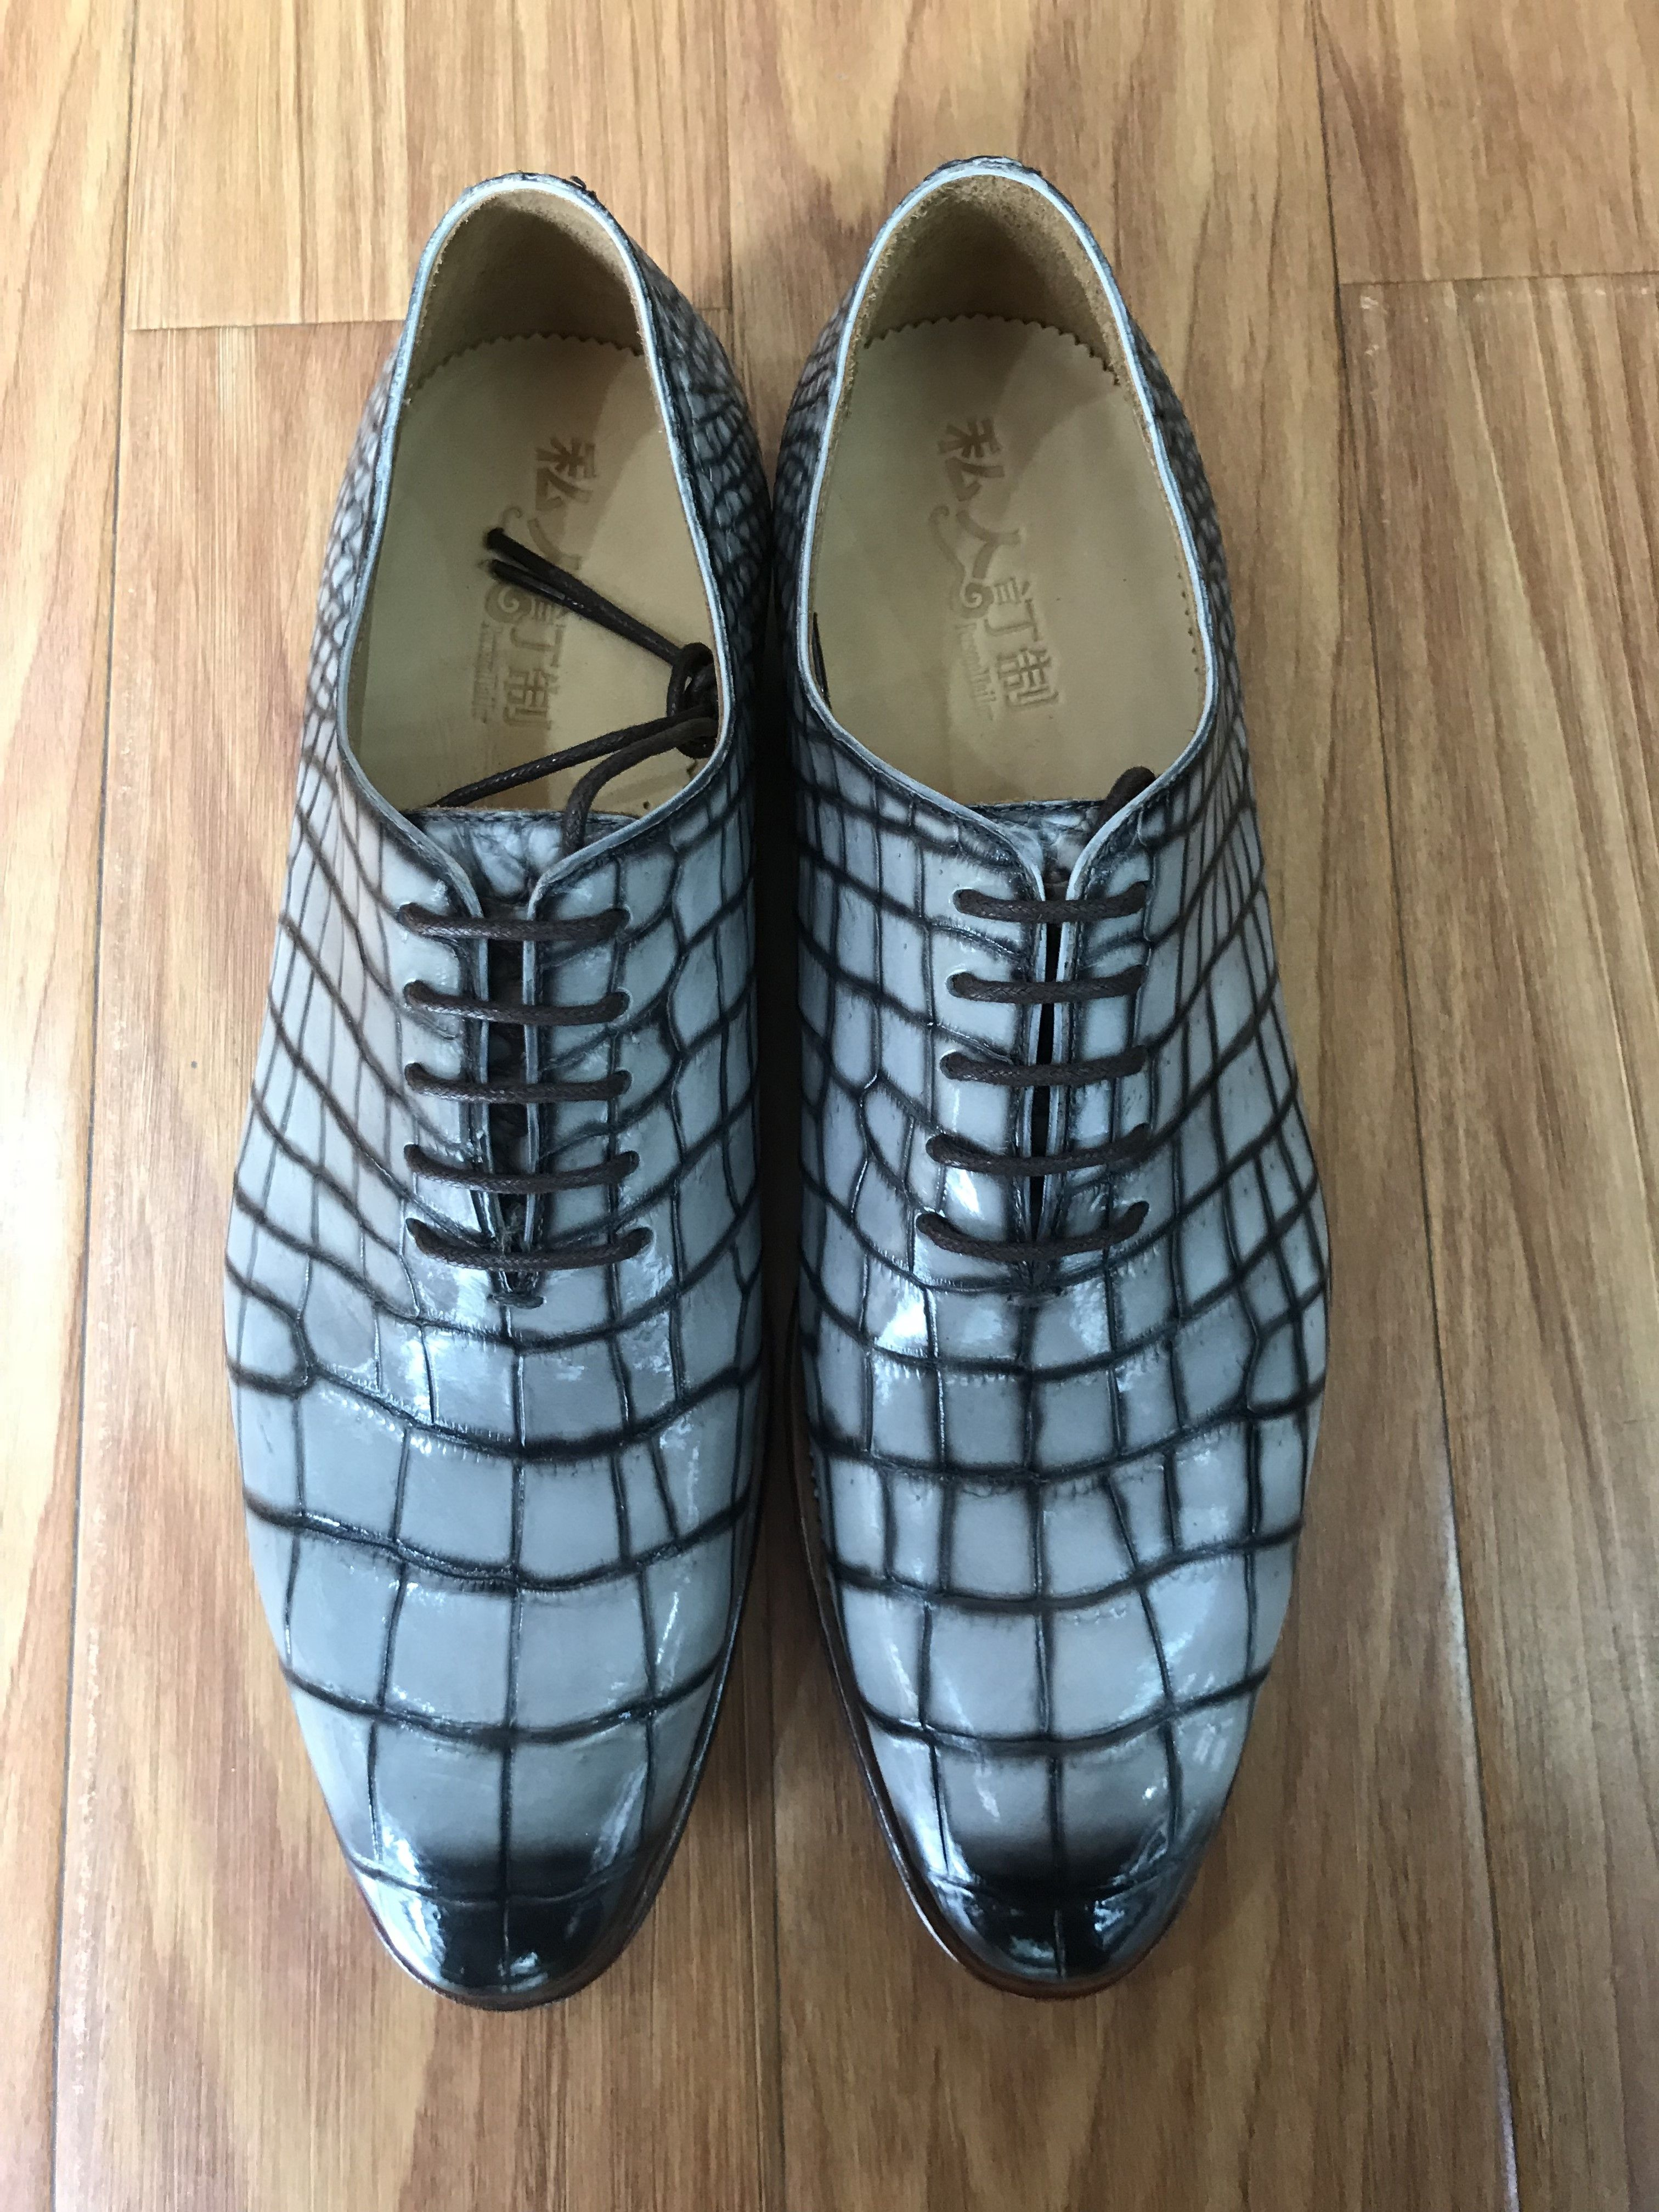 b41f2556a1ba Best alligator shoes for sale Male Shoes